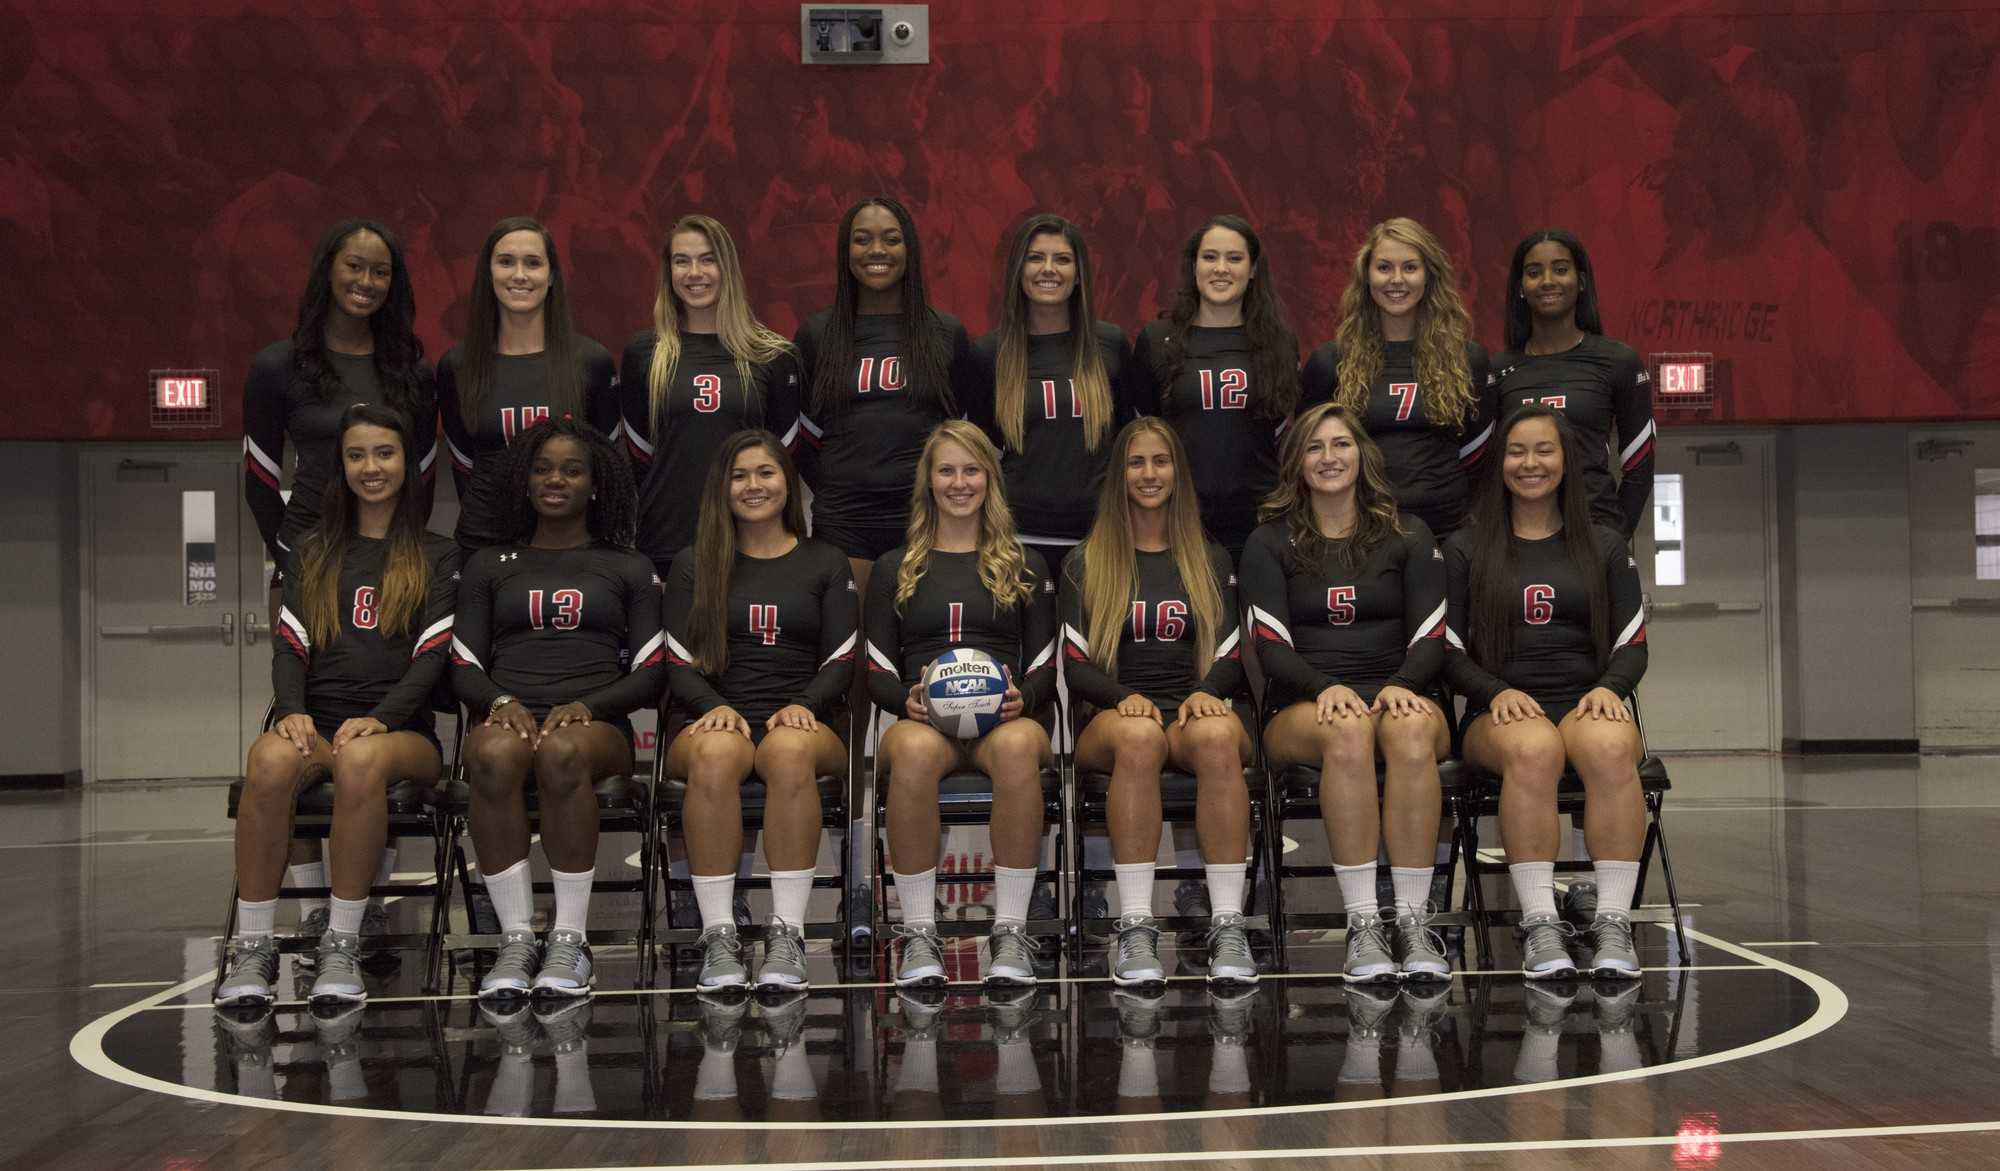 CSUN women's volleyball team poses for photo